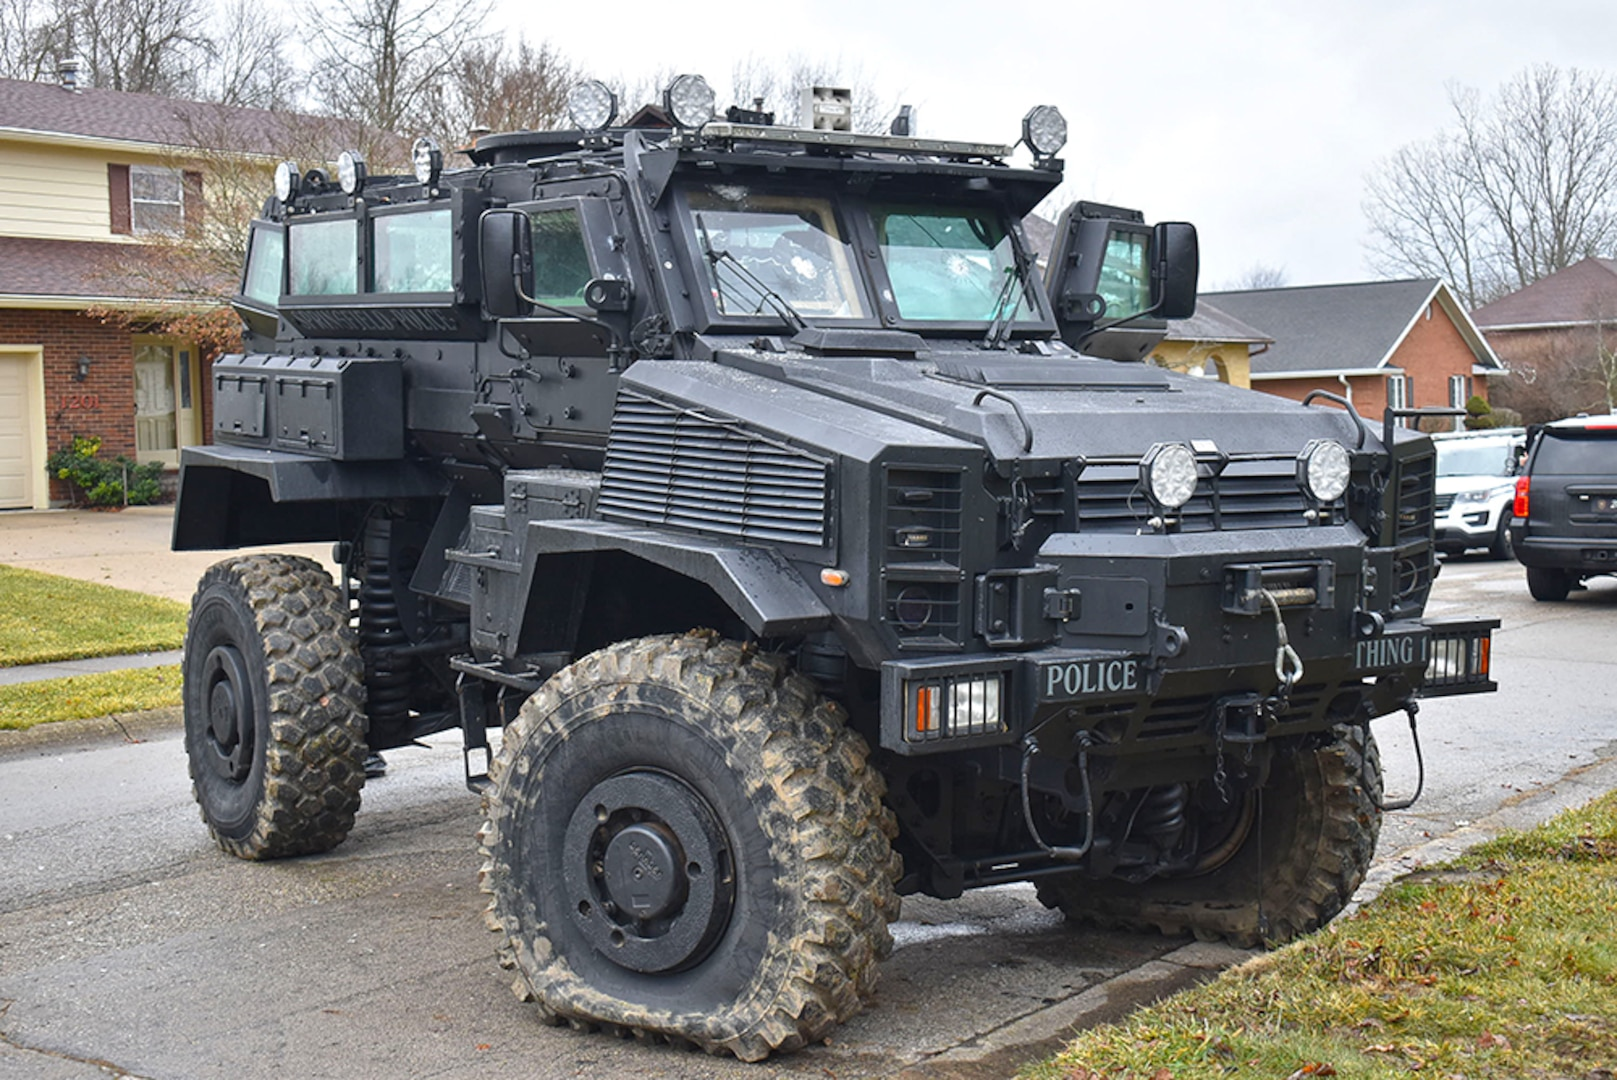 An MRAP with bullet marks and flat front tires is parked on a residential street.